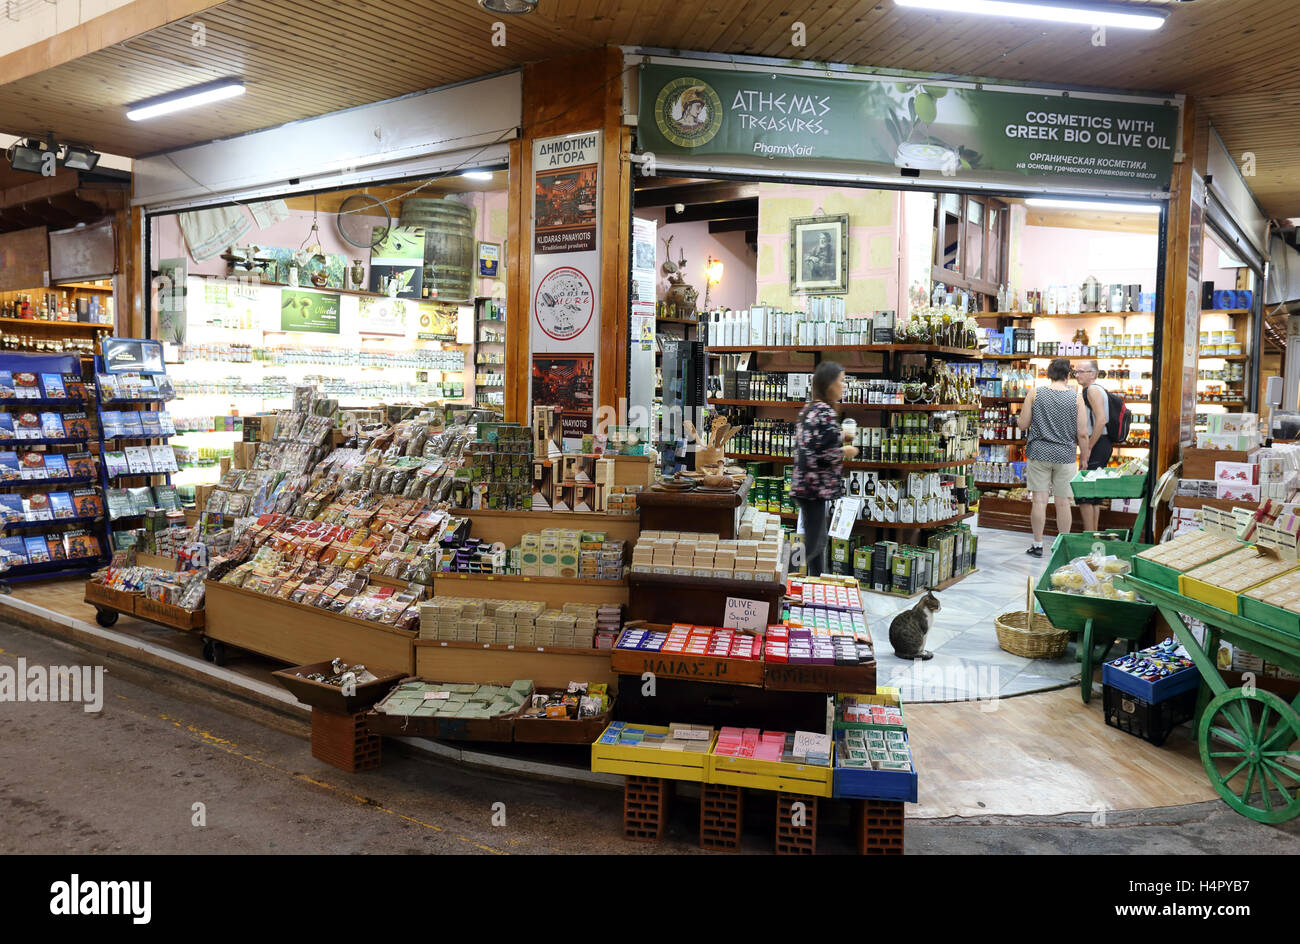 Shopping in Crete: supermarkets, boutiques, markets